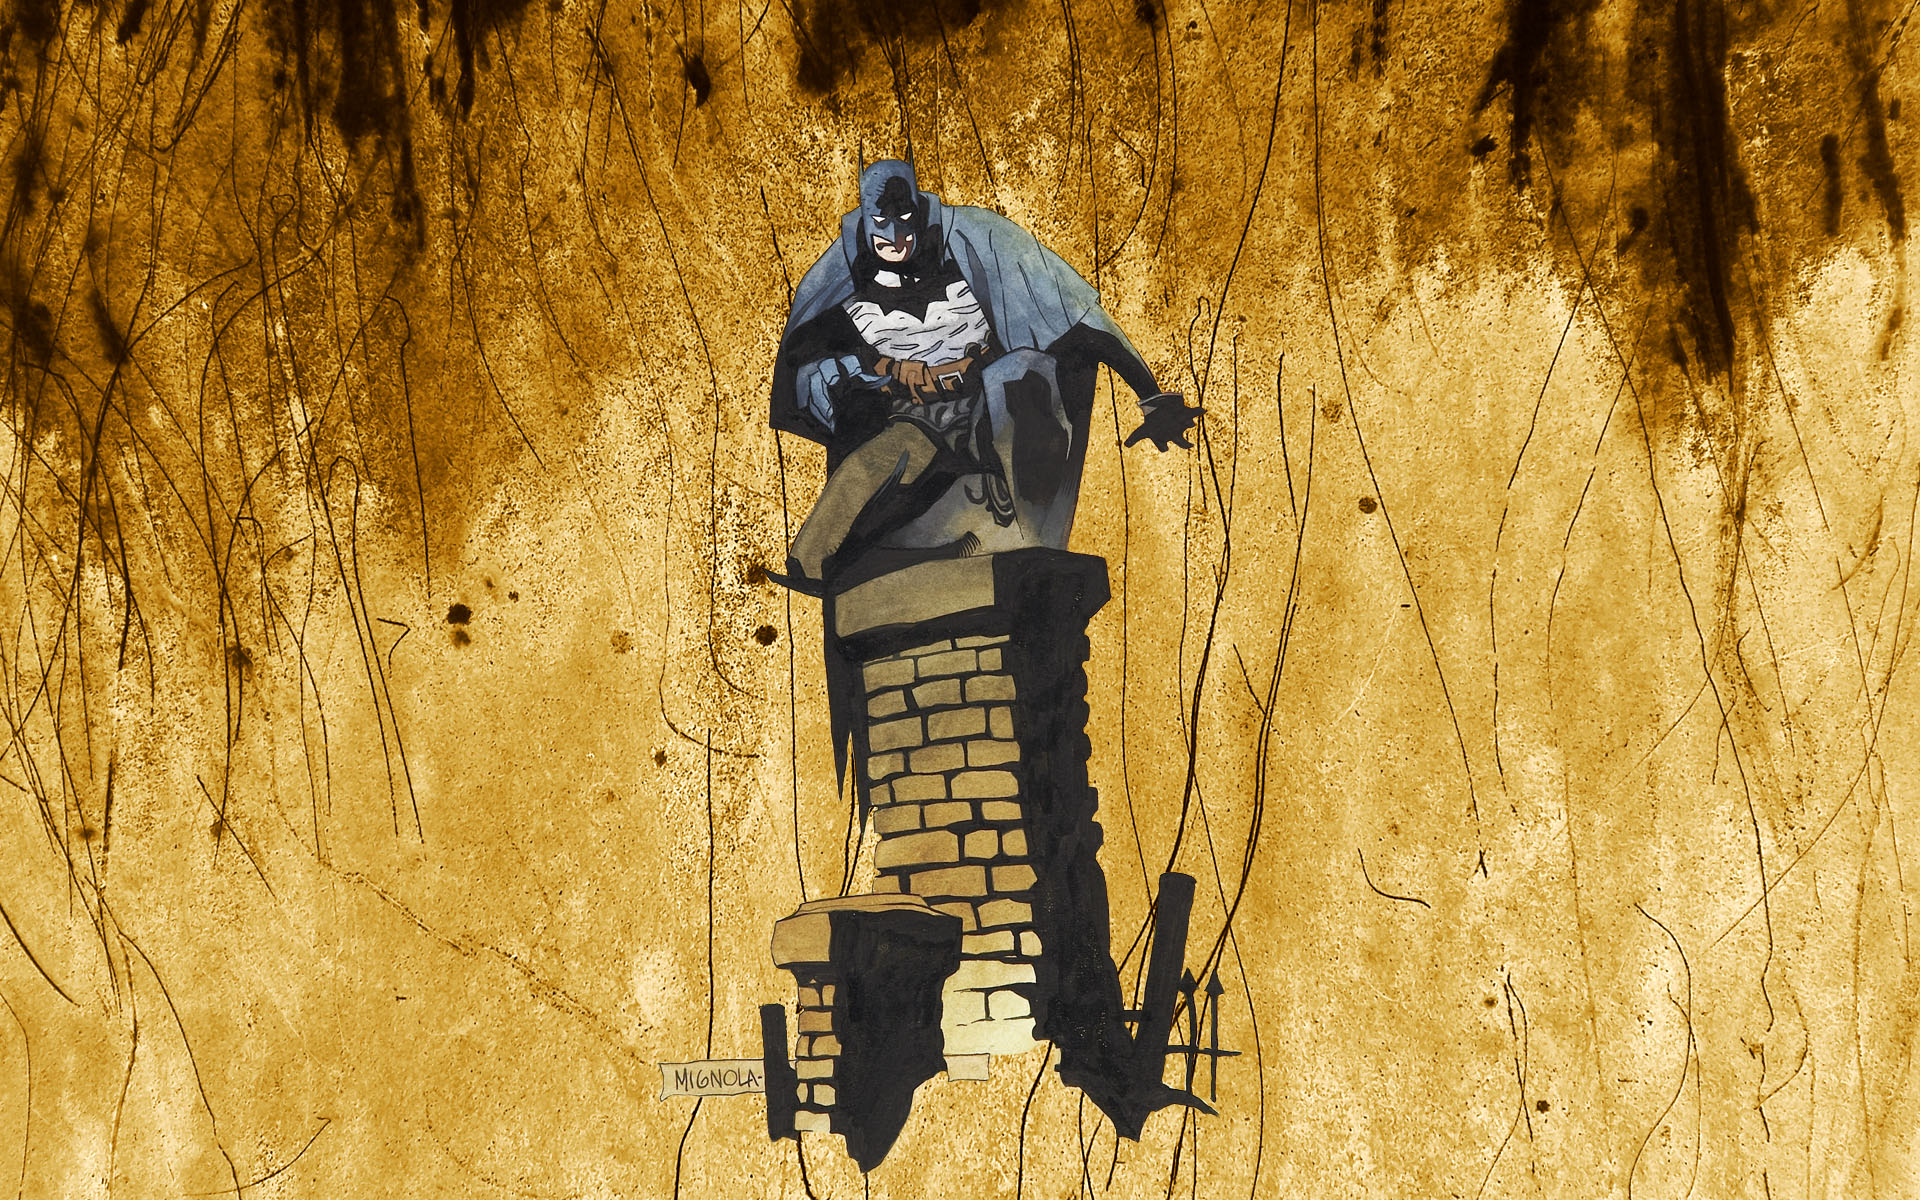 Drawn wallpaper batman Comics dc 178941 superhero wallpaper